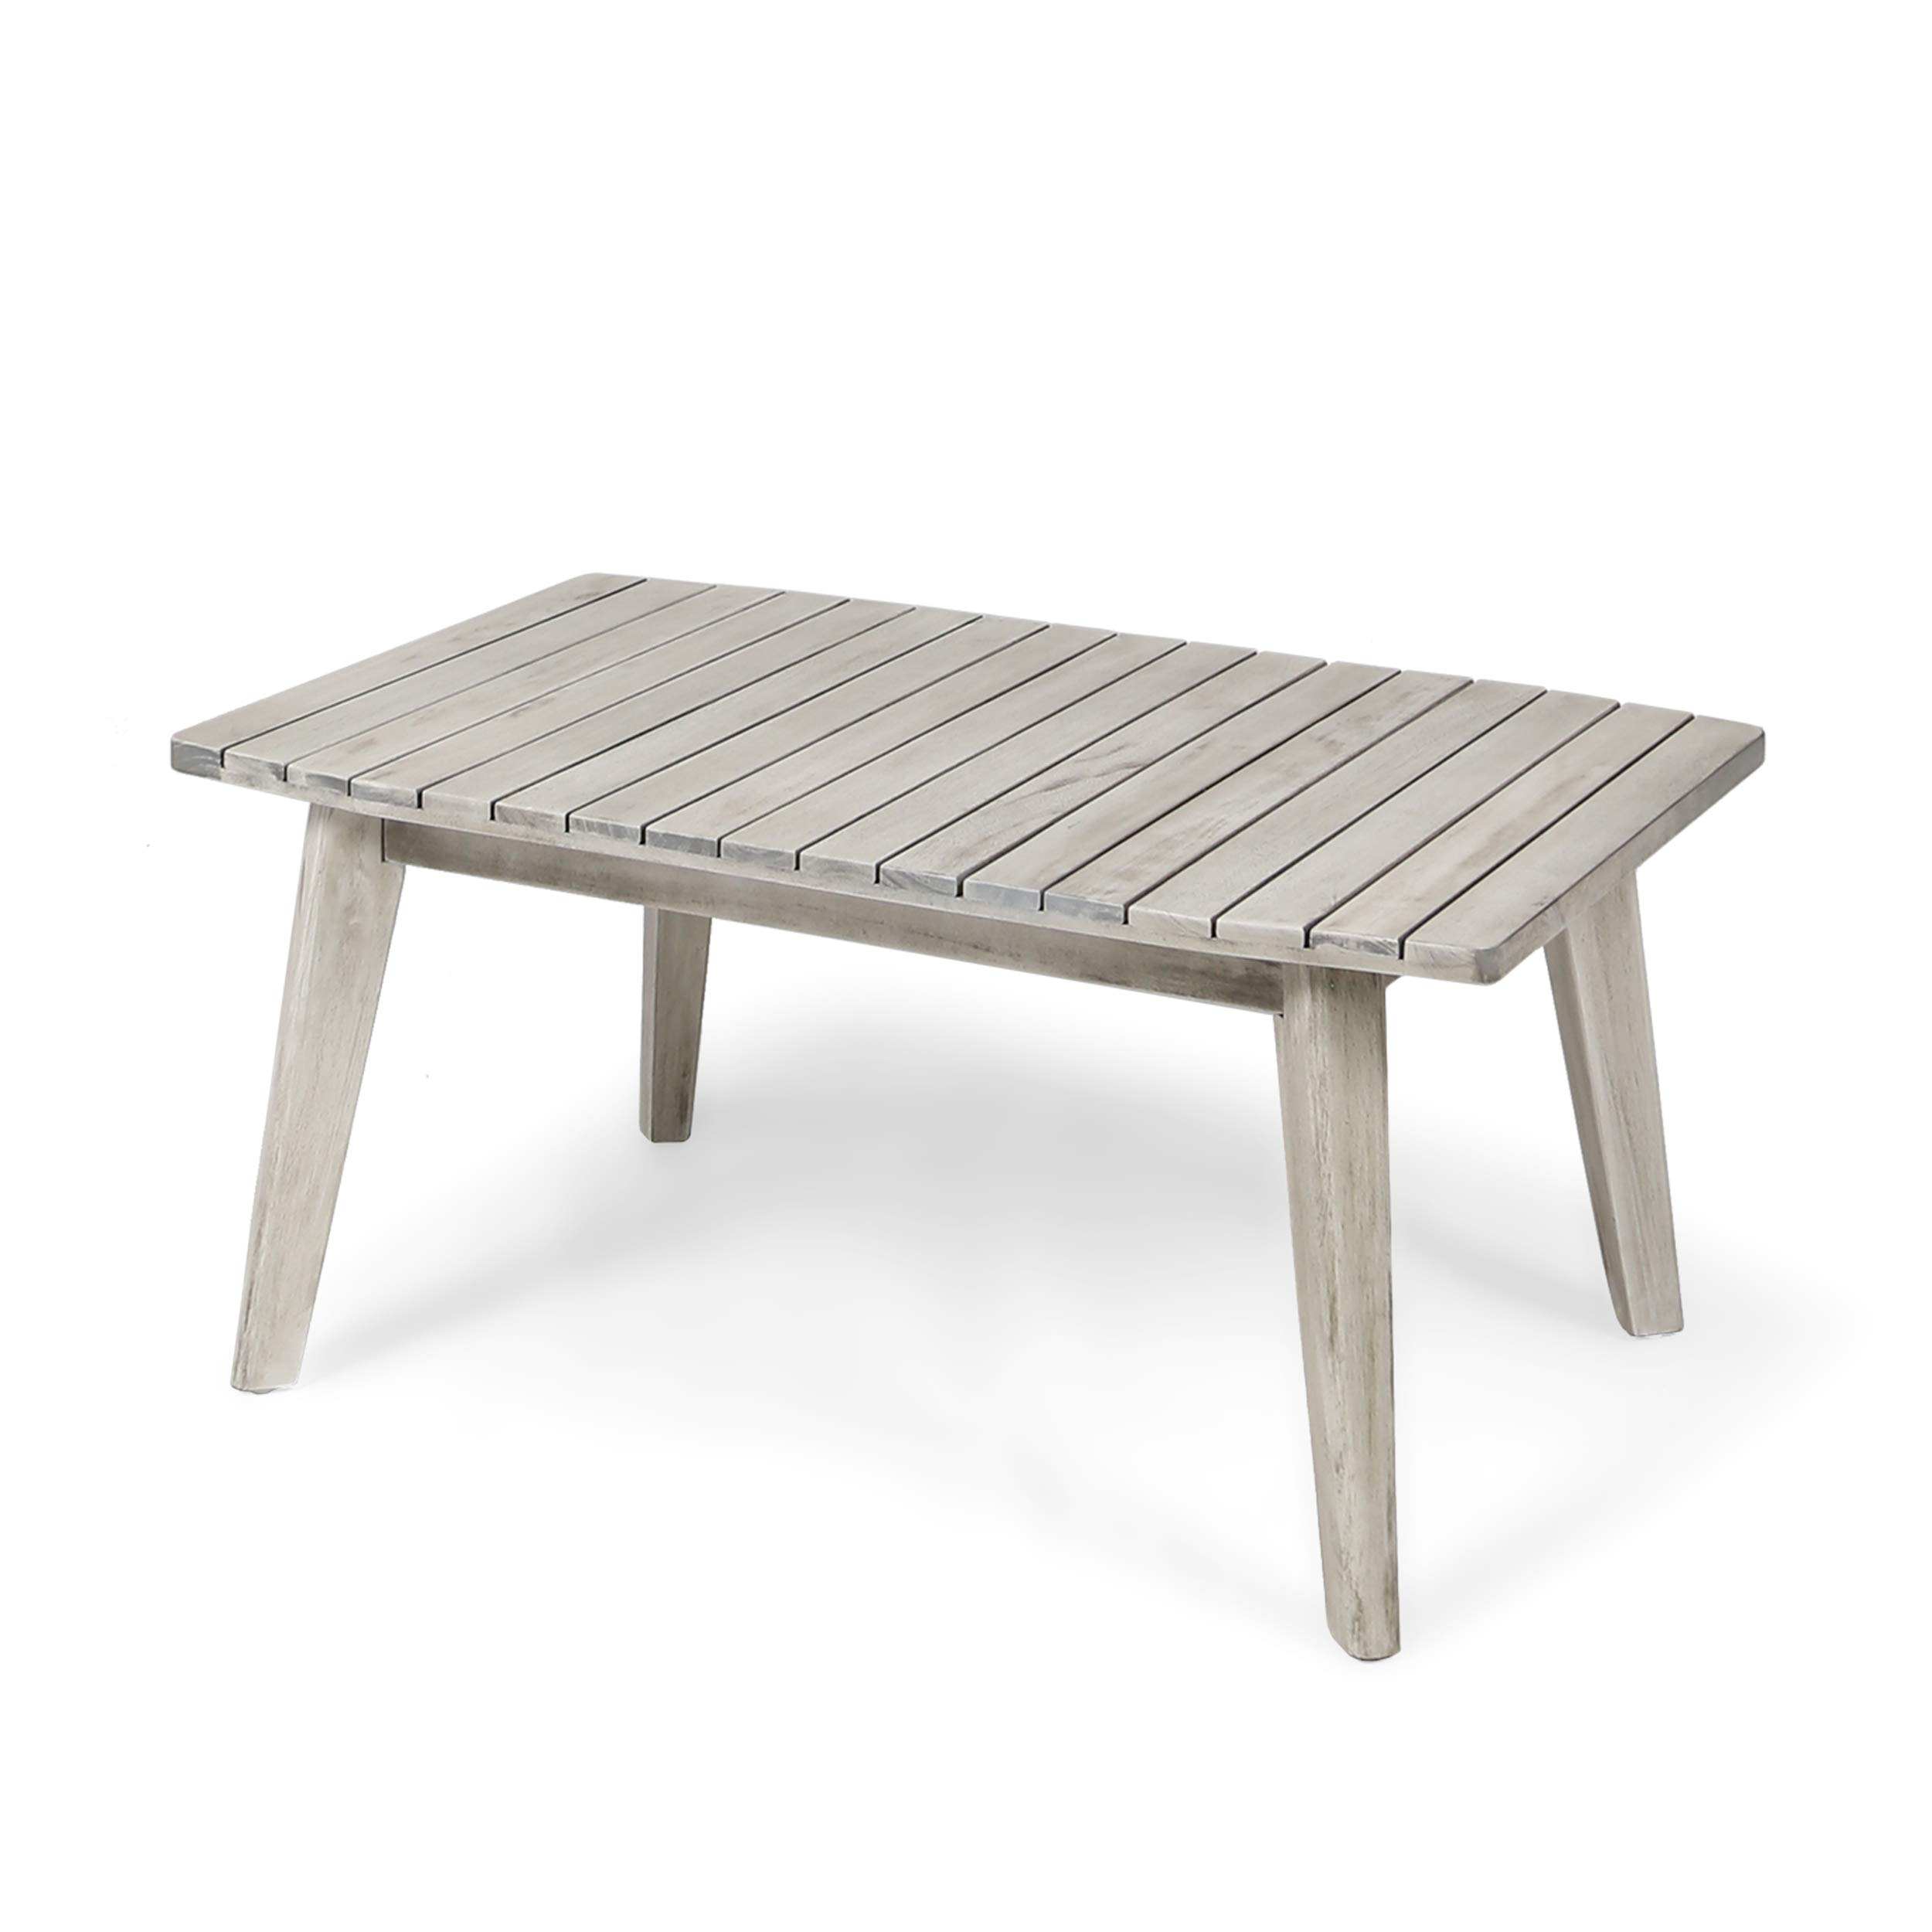 Boyle Outdoor Acacia Wood Coffee Table, Weathered Gray Finish